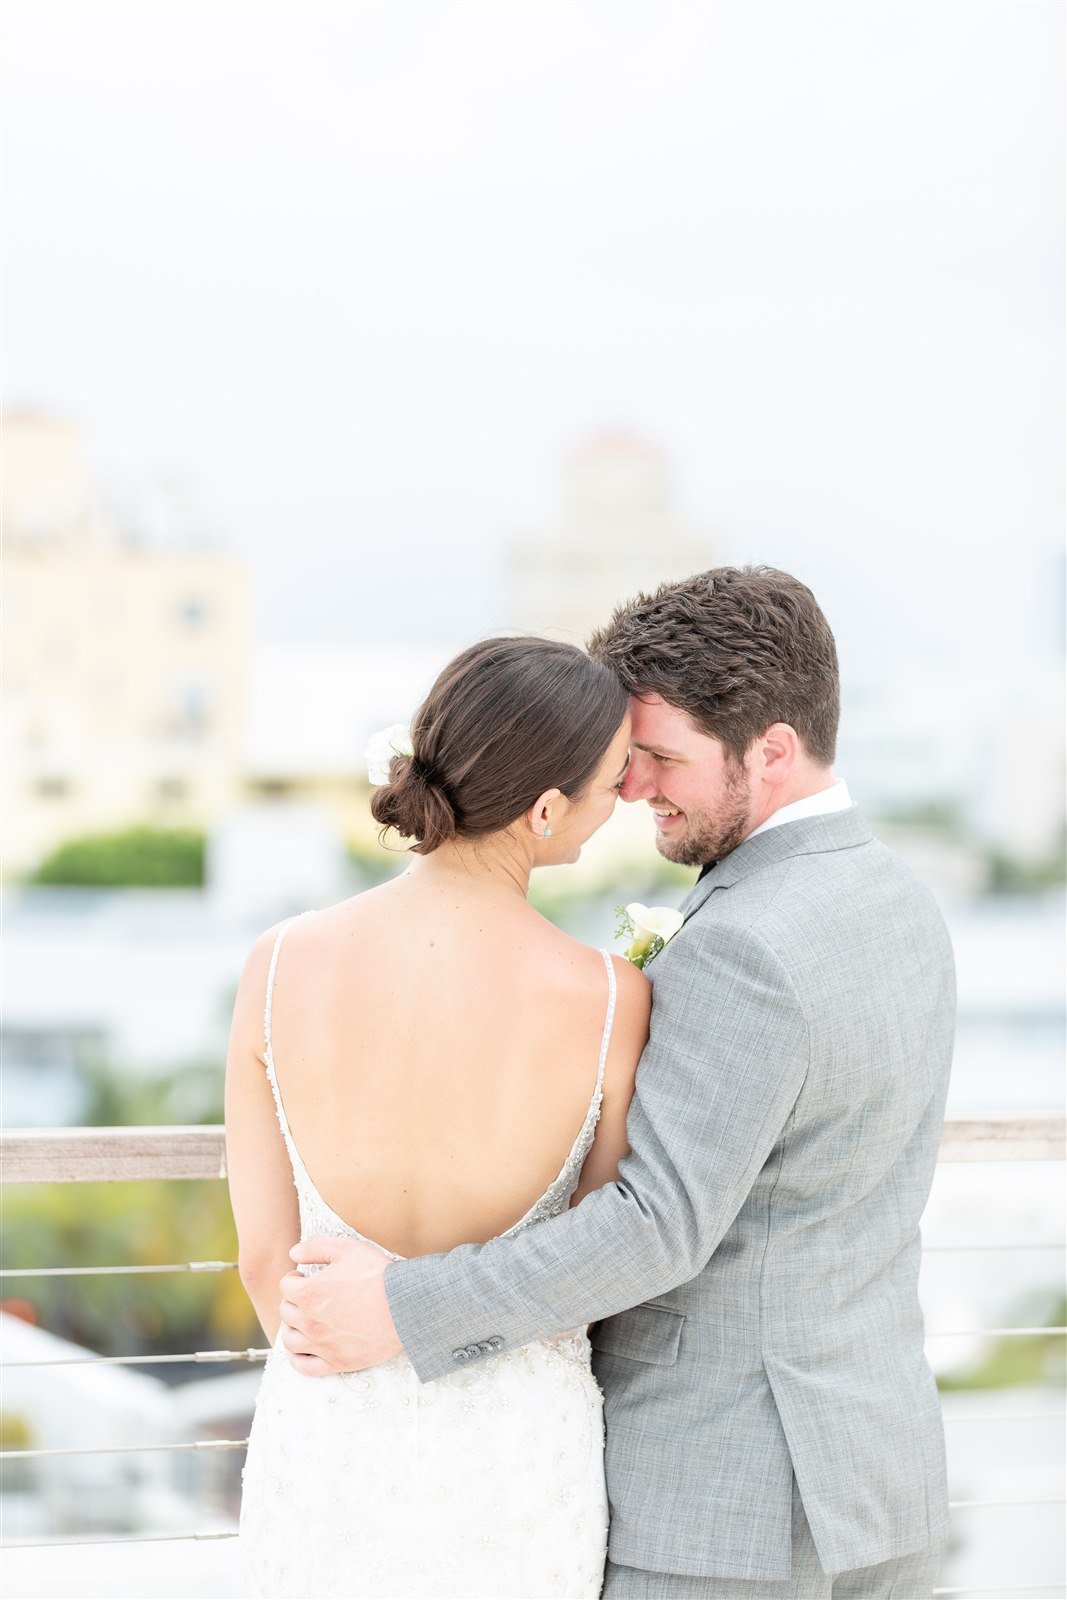 Betsy-Hotel-Miami-Beach-Wedding-Bride-and-Groom-Chris-and-Micaela-Photography-45